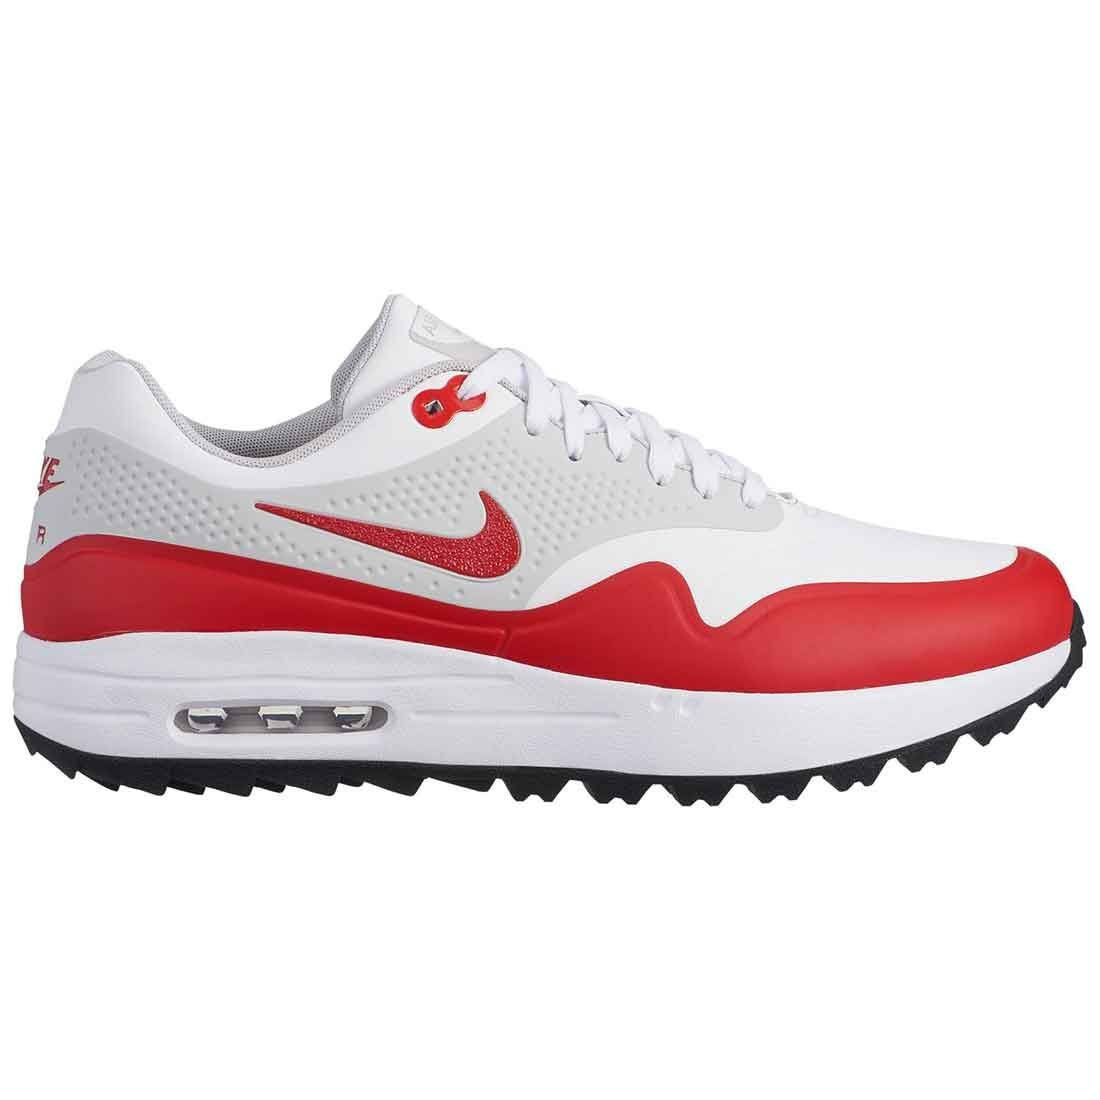 Buy Nike Air Max 1 G Golf Shoes White/University Red   Golf Discount